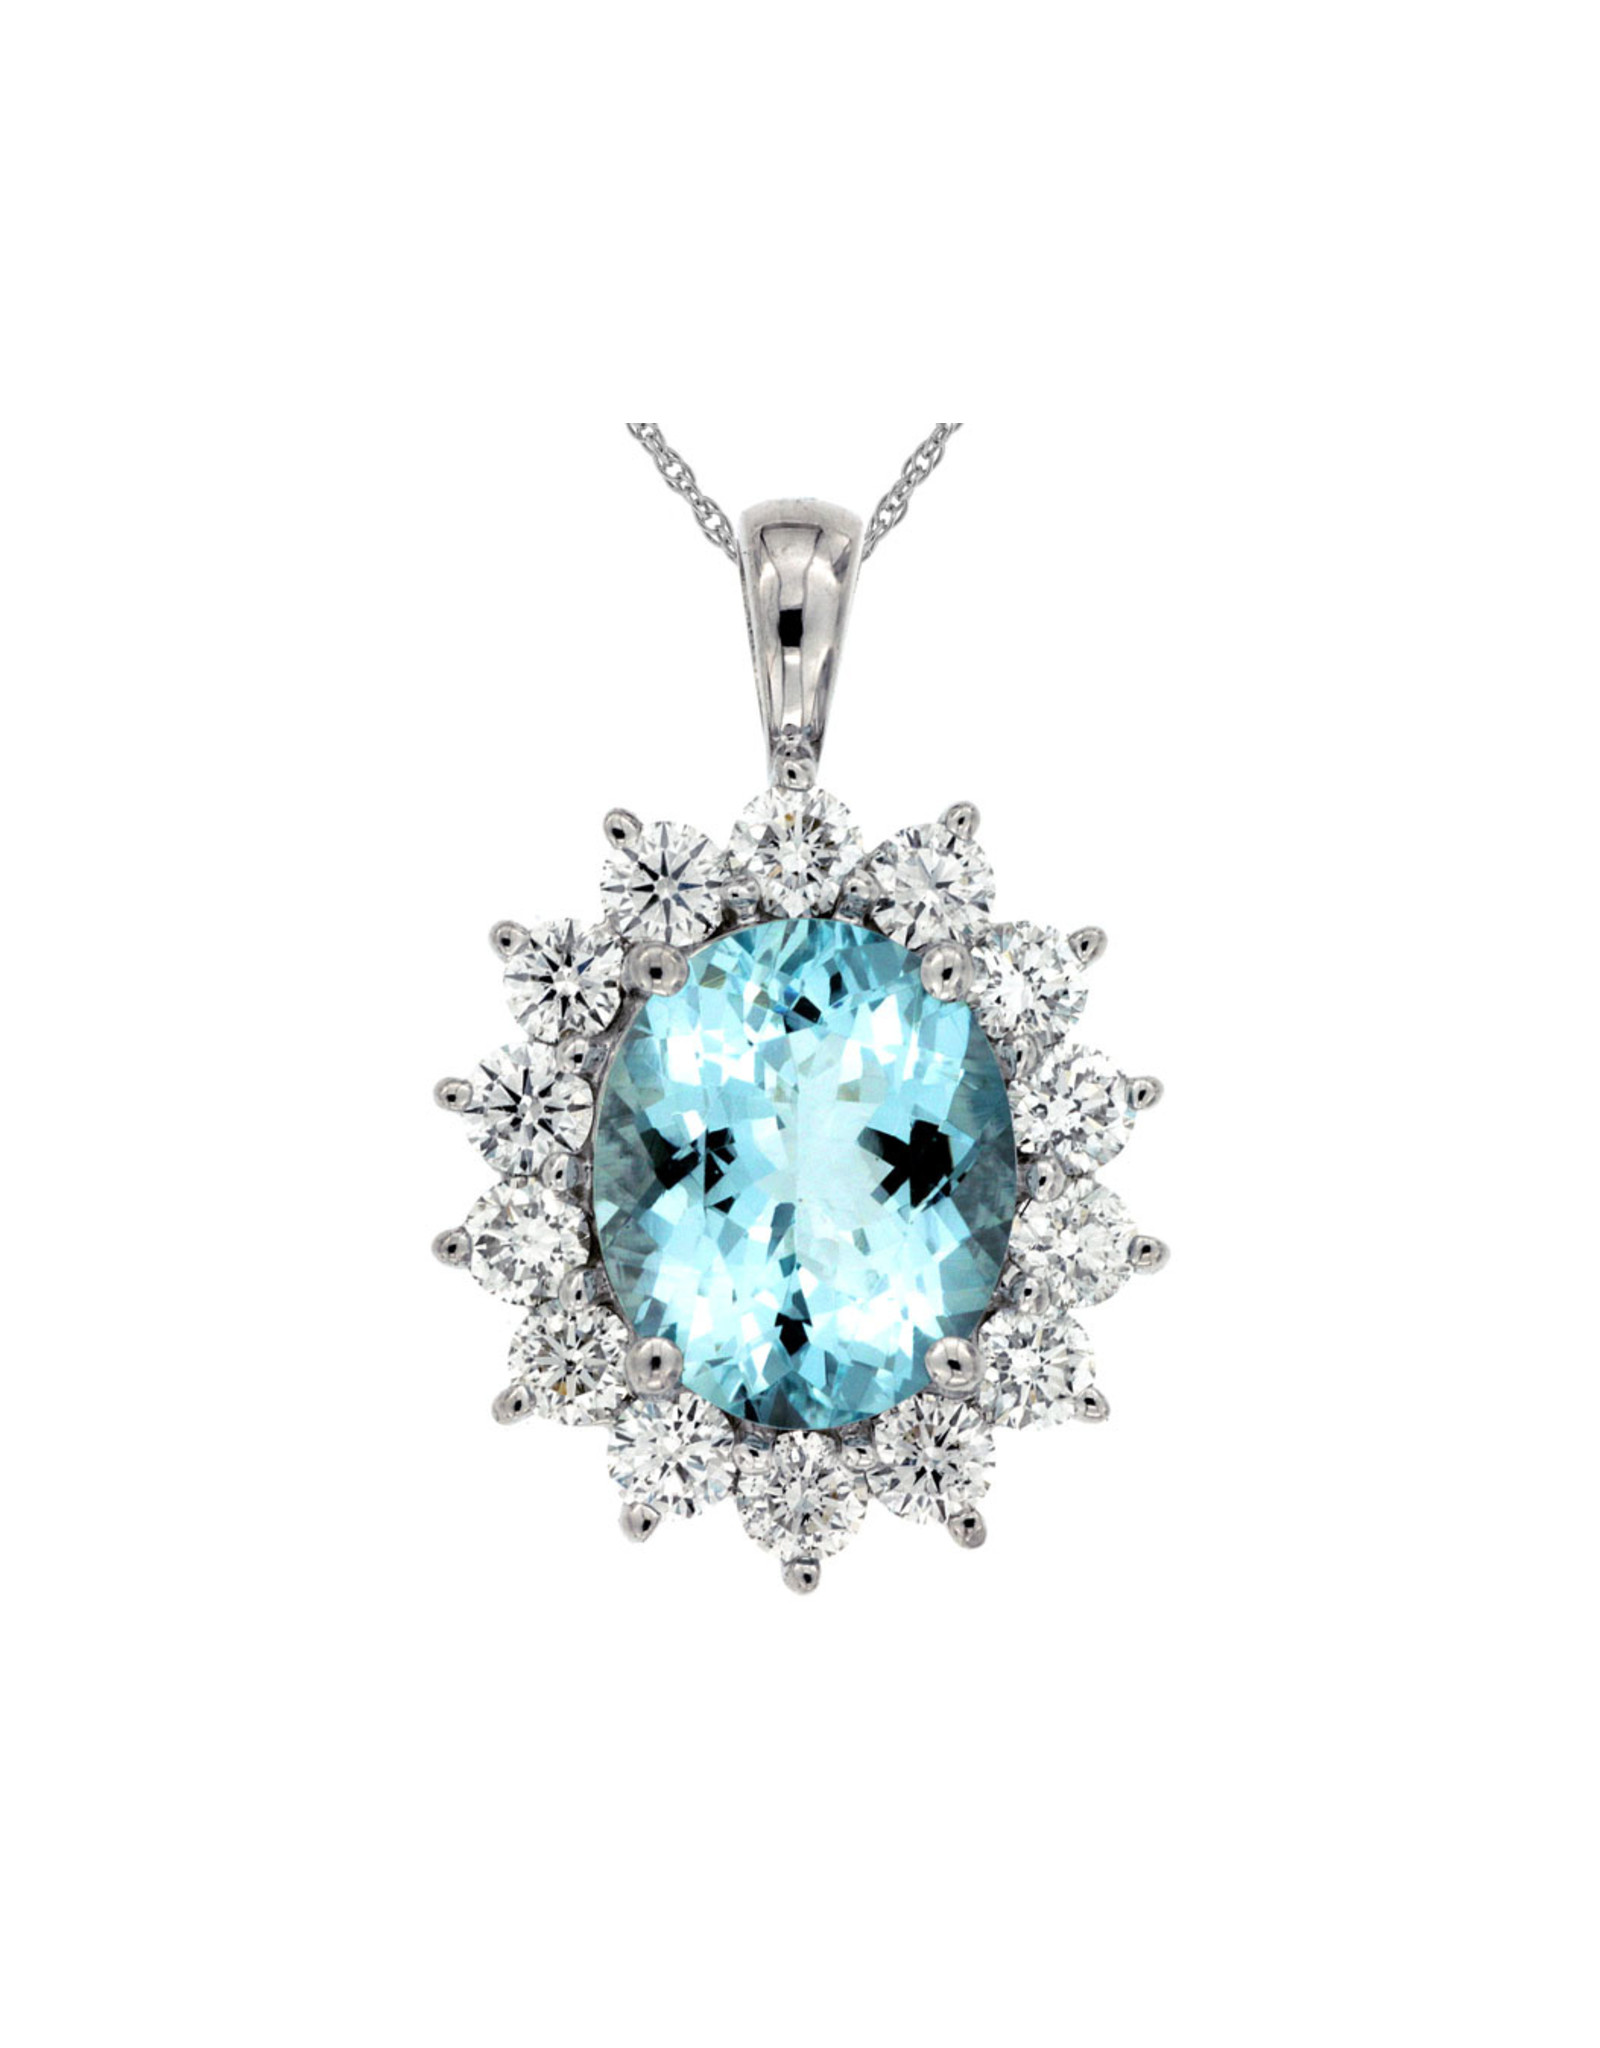 14K White Gold Oval Aquamarine and Diamond Necklace, Aq: 4.05ct, D: 1.90ct